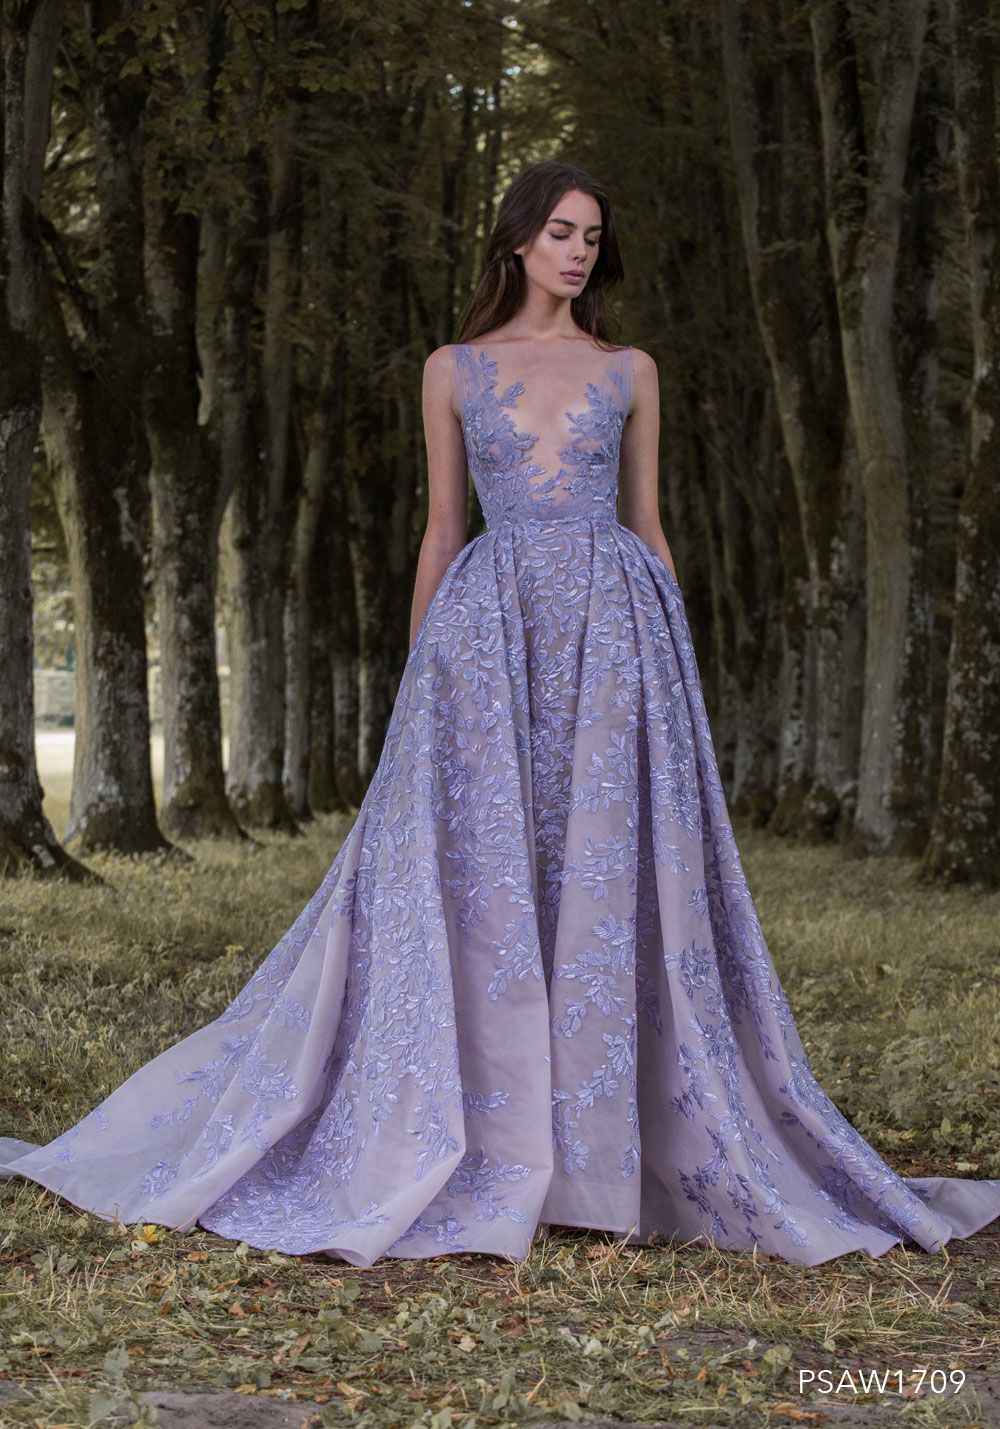 Paolo Sebastian   Fashion...Clothes, watches, shoes...Vanity ...